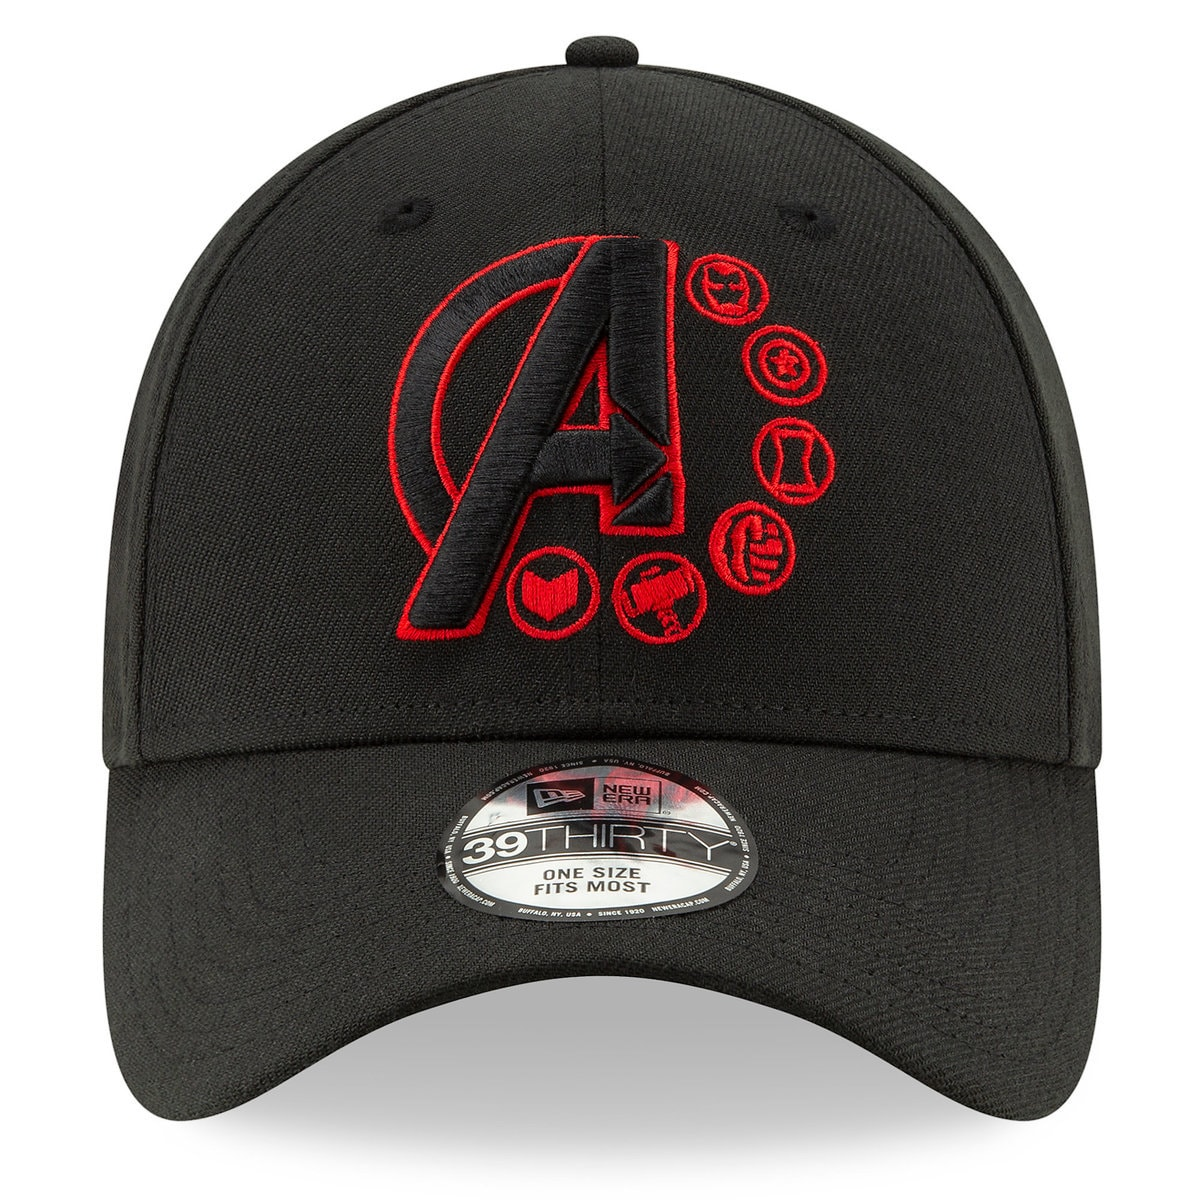 4dc6302e Product Image of Marvel's Avengers: Endgame Baseball Cap for Adults by New  Era - Marvel